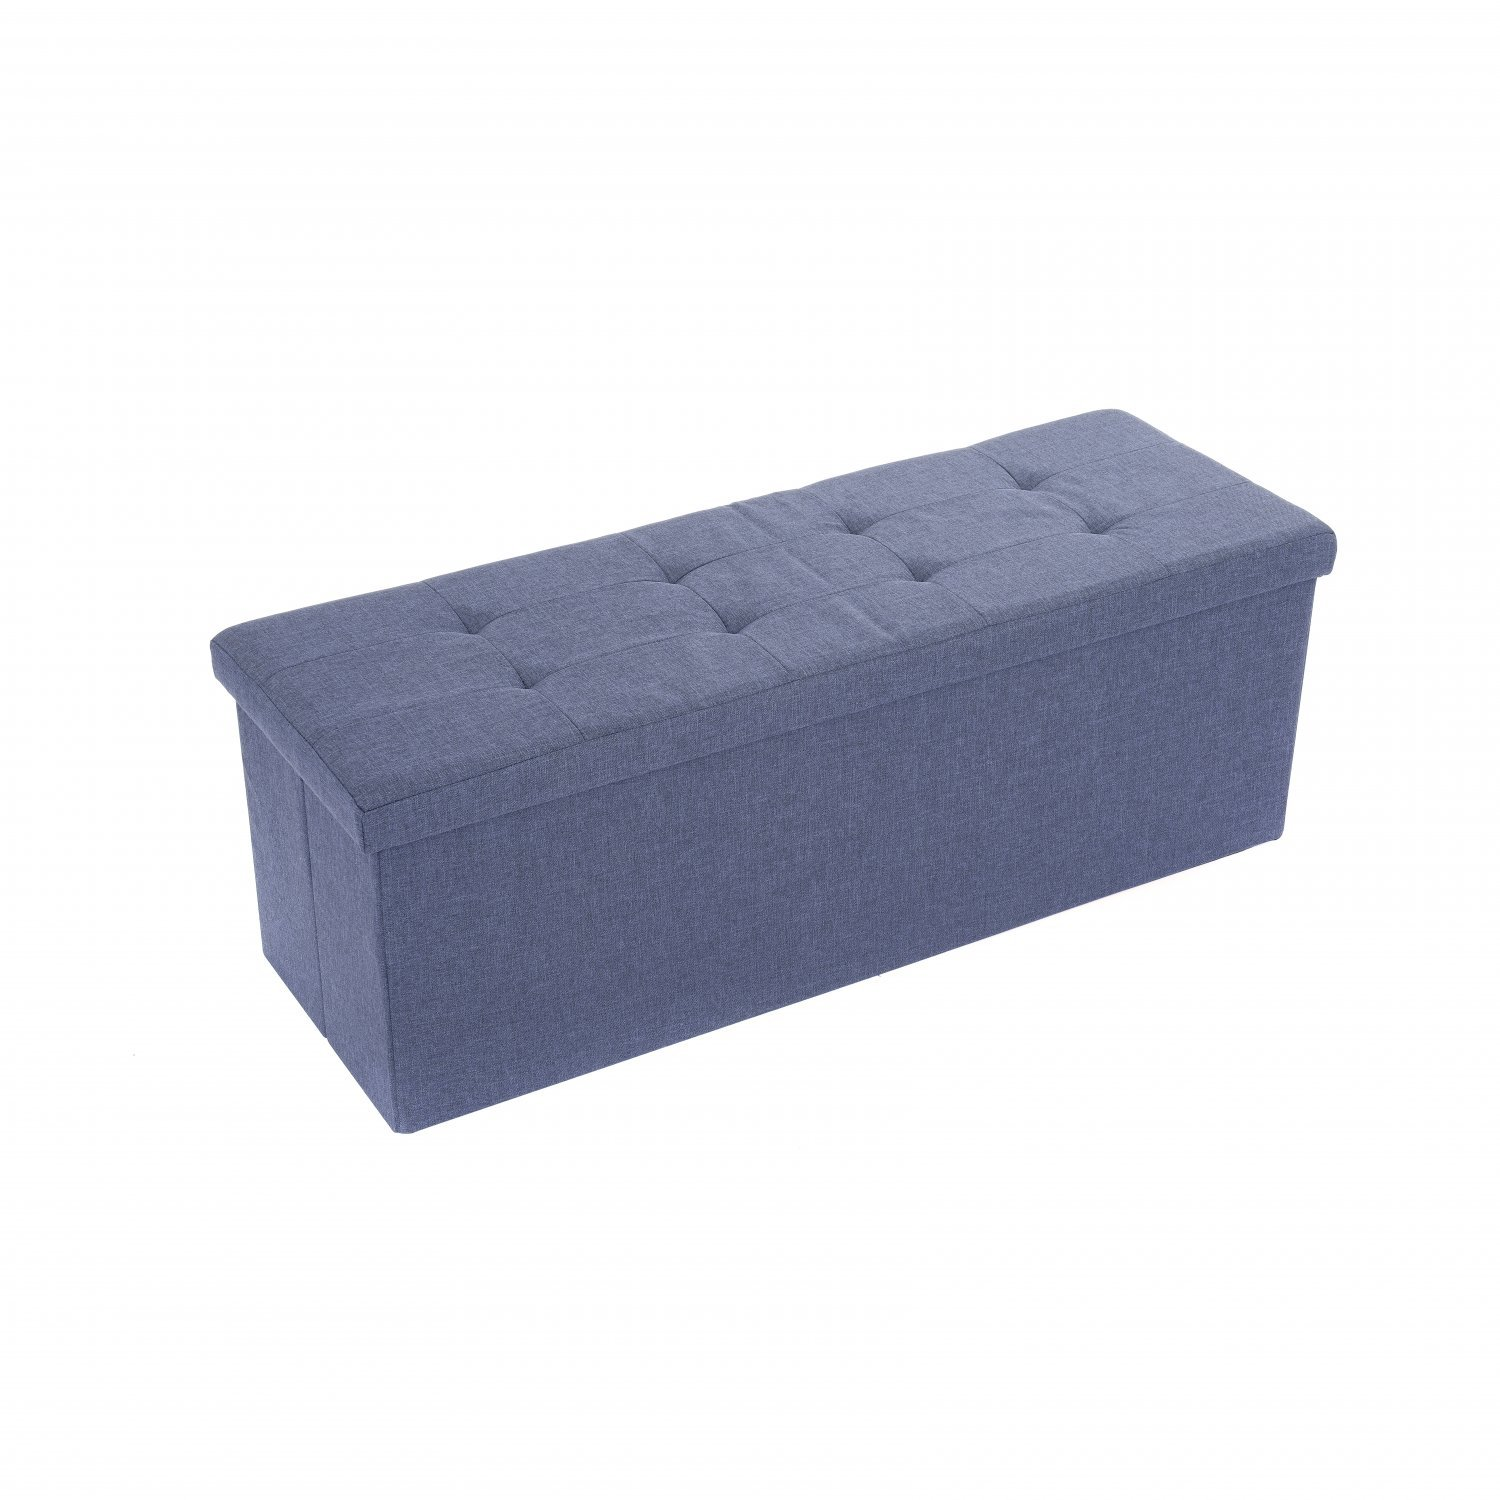 Large Blue Linen Folding Ottoman Storage Chest Box Seat Bench 29 99 Oypla Stocking The Very Best In Toys Electrical Furniture Homeware Garden Gifts And Much More